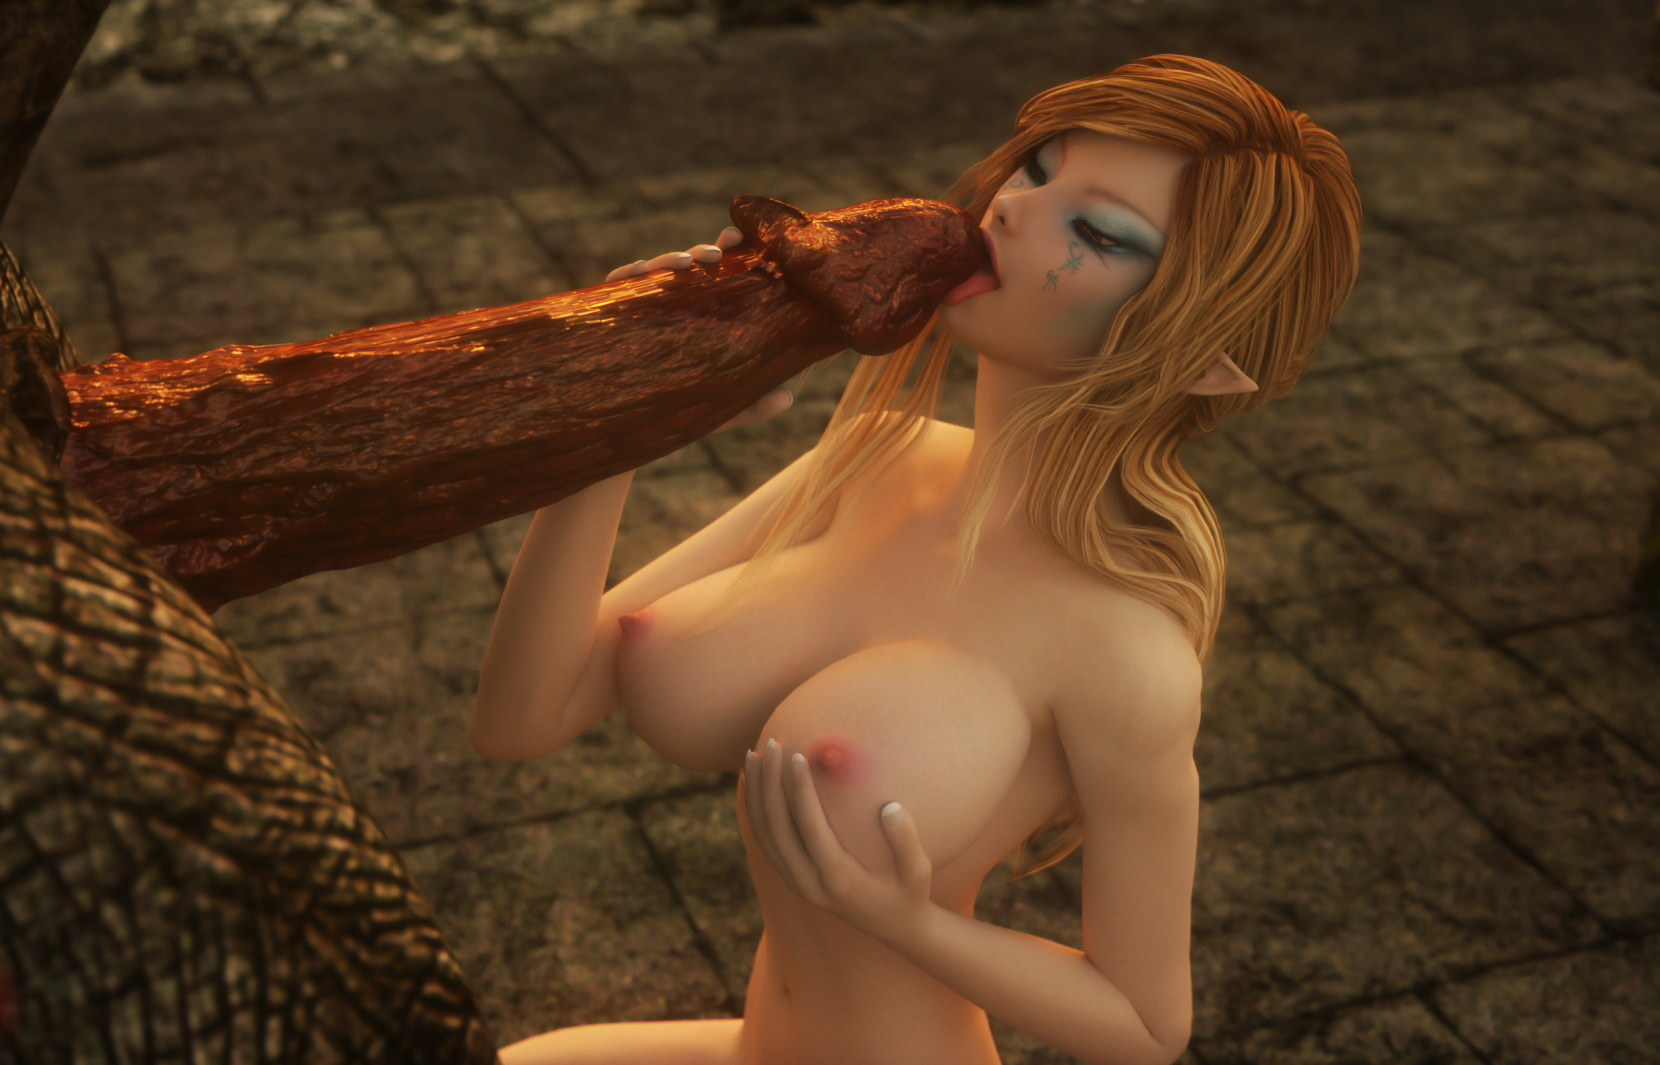 3d animated sex with dragons and elves porn images